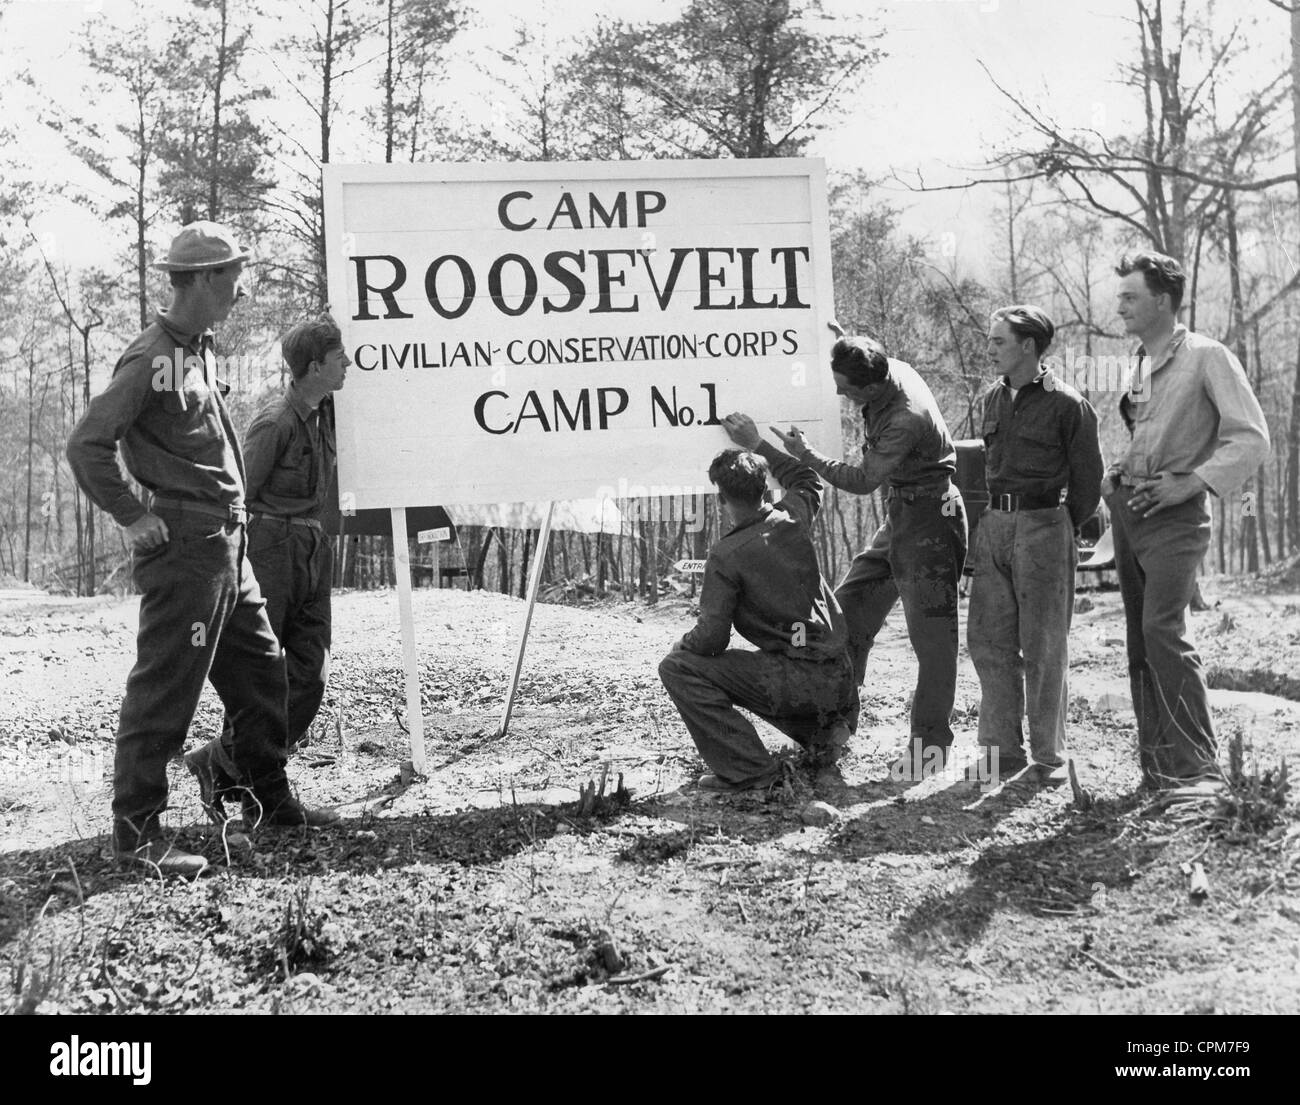 Camps of the Civilian Conservation Corps, 1933 - Stock Image